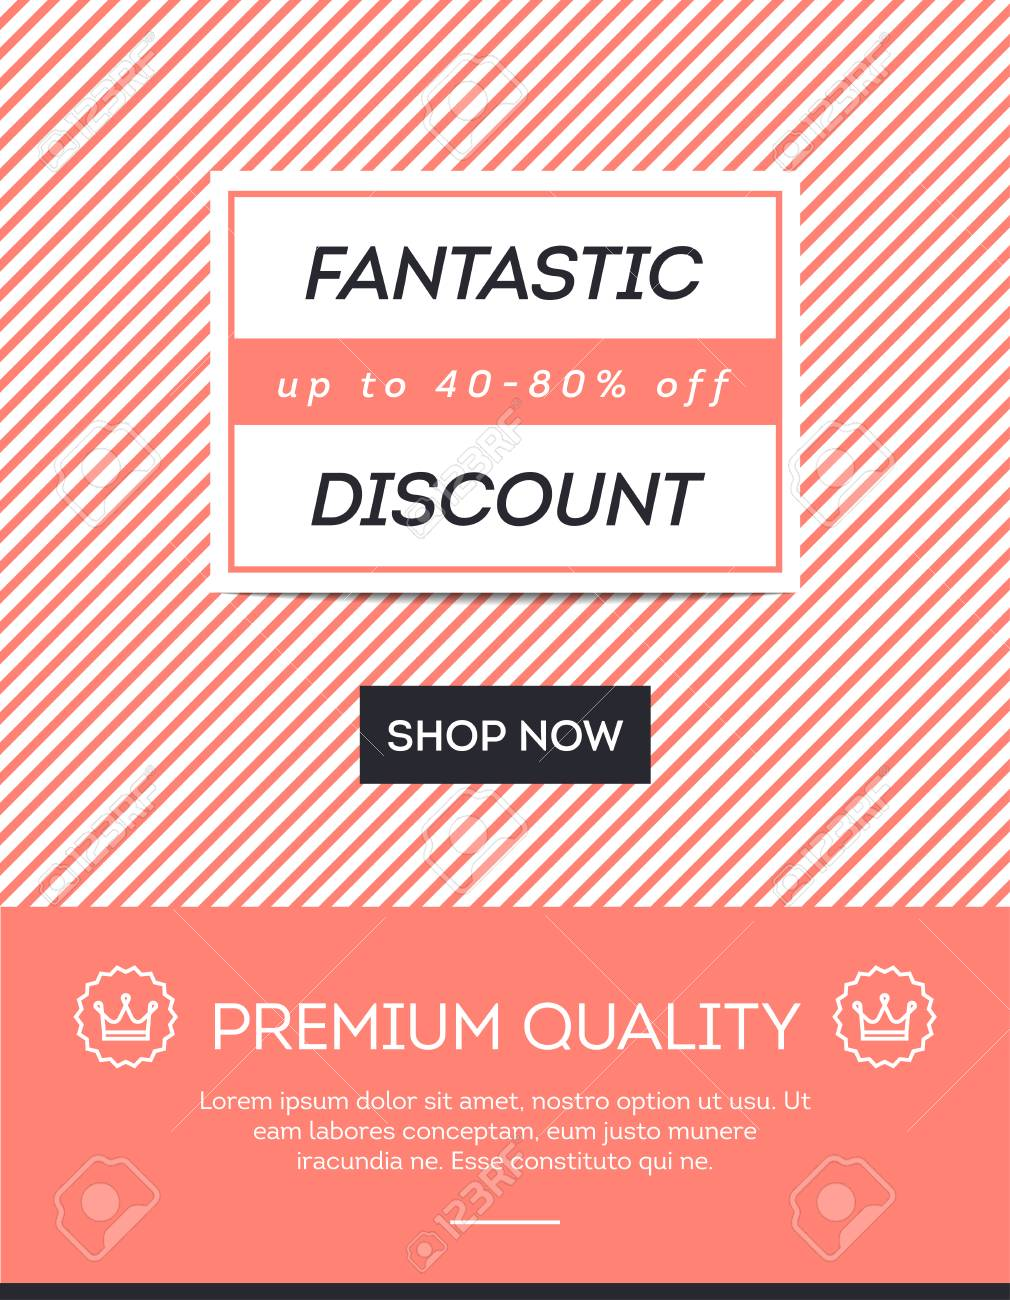 sale discount online shopping banner newsletter template